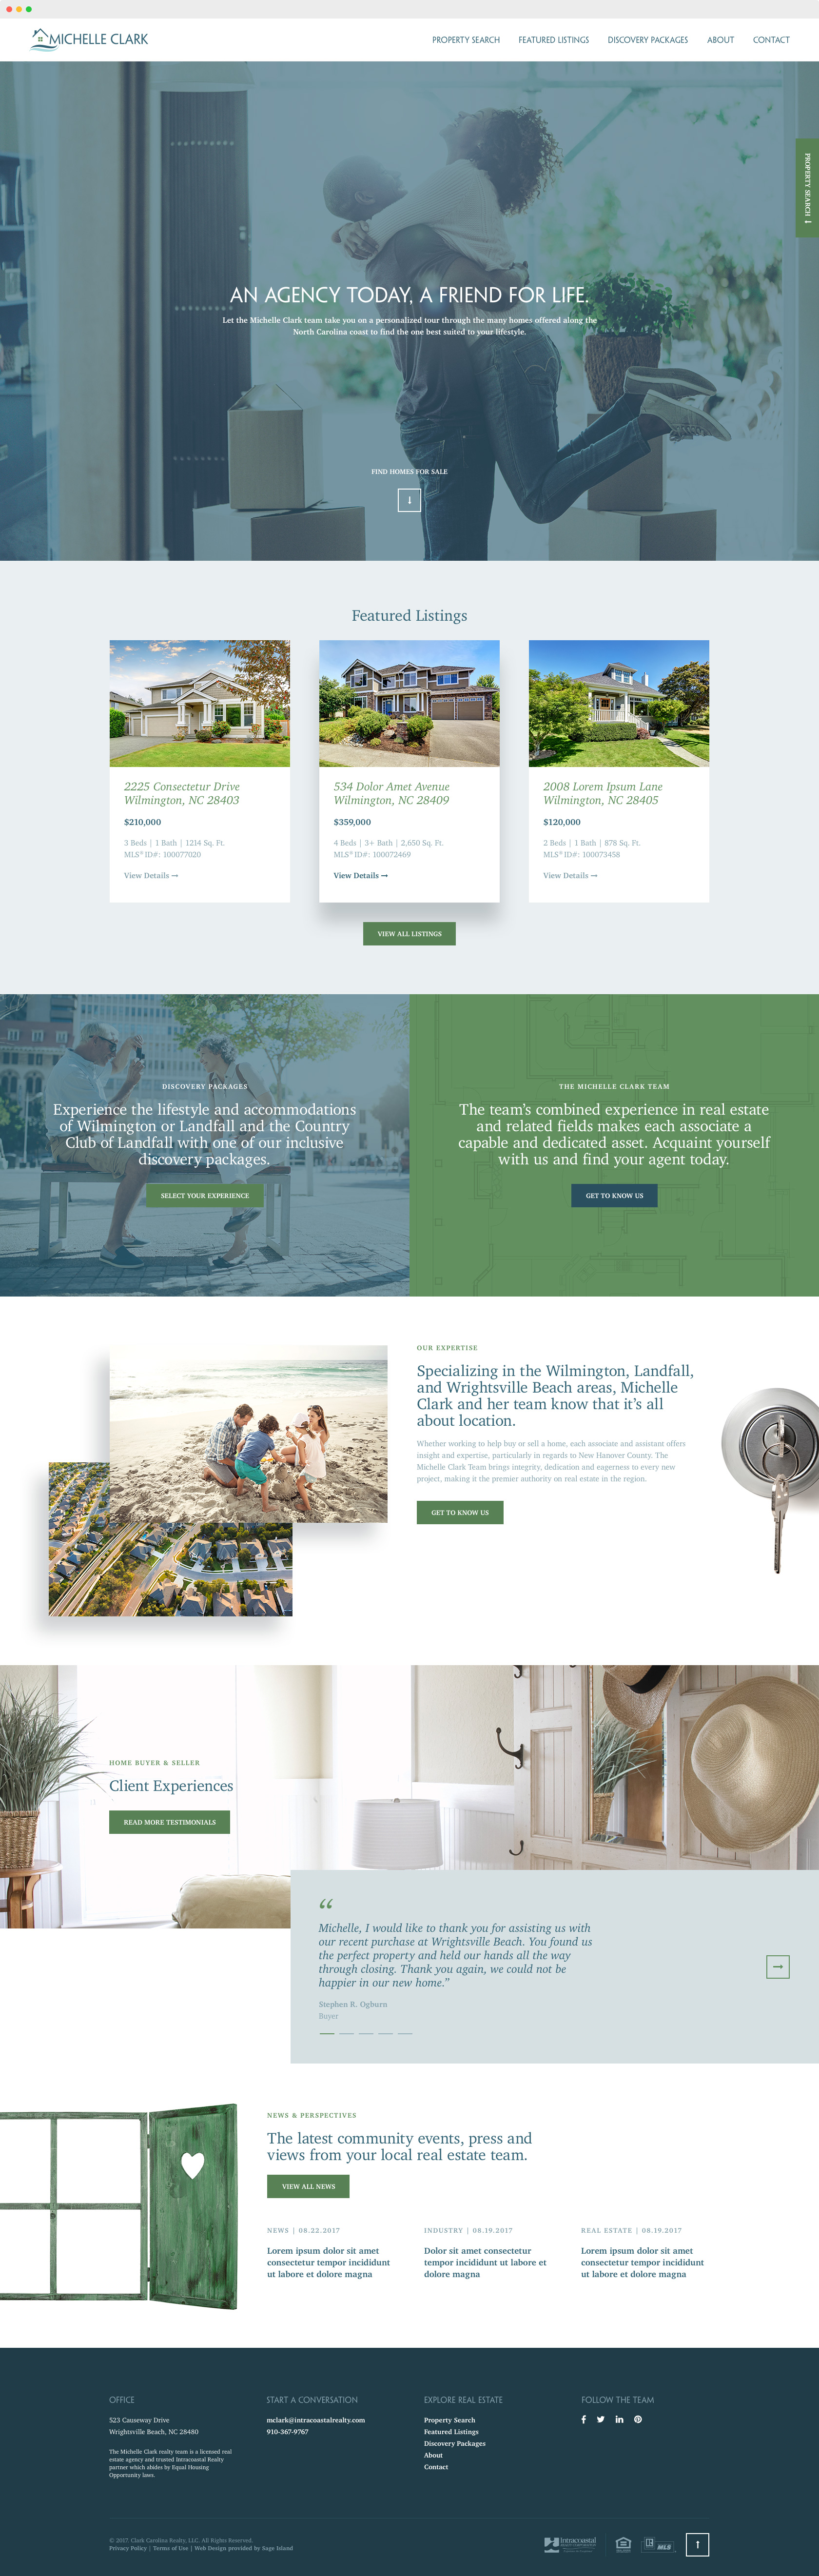 Michelle Clark Team Real Estate Agency Site Design